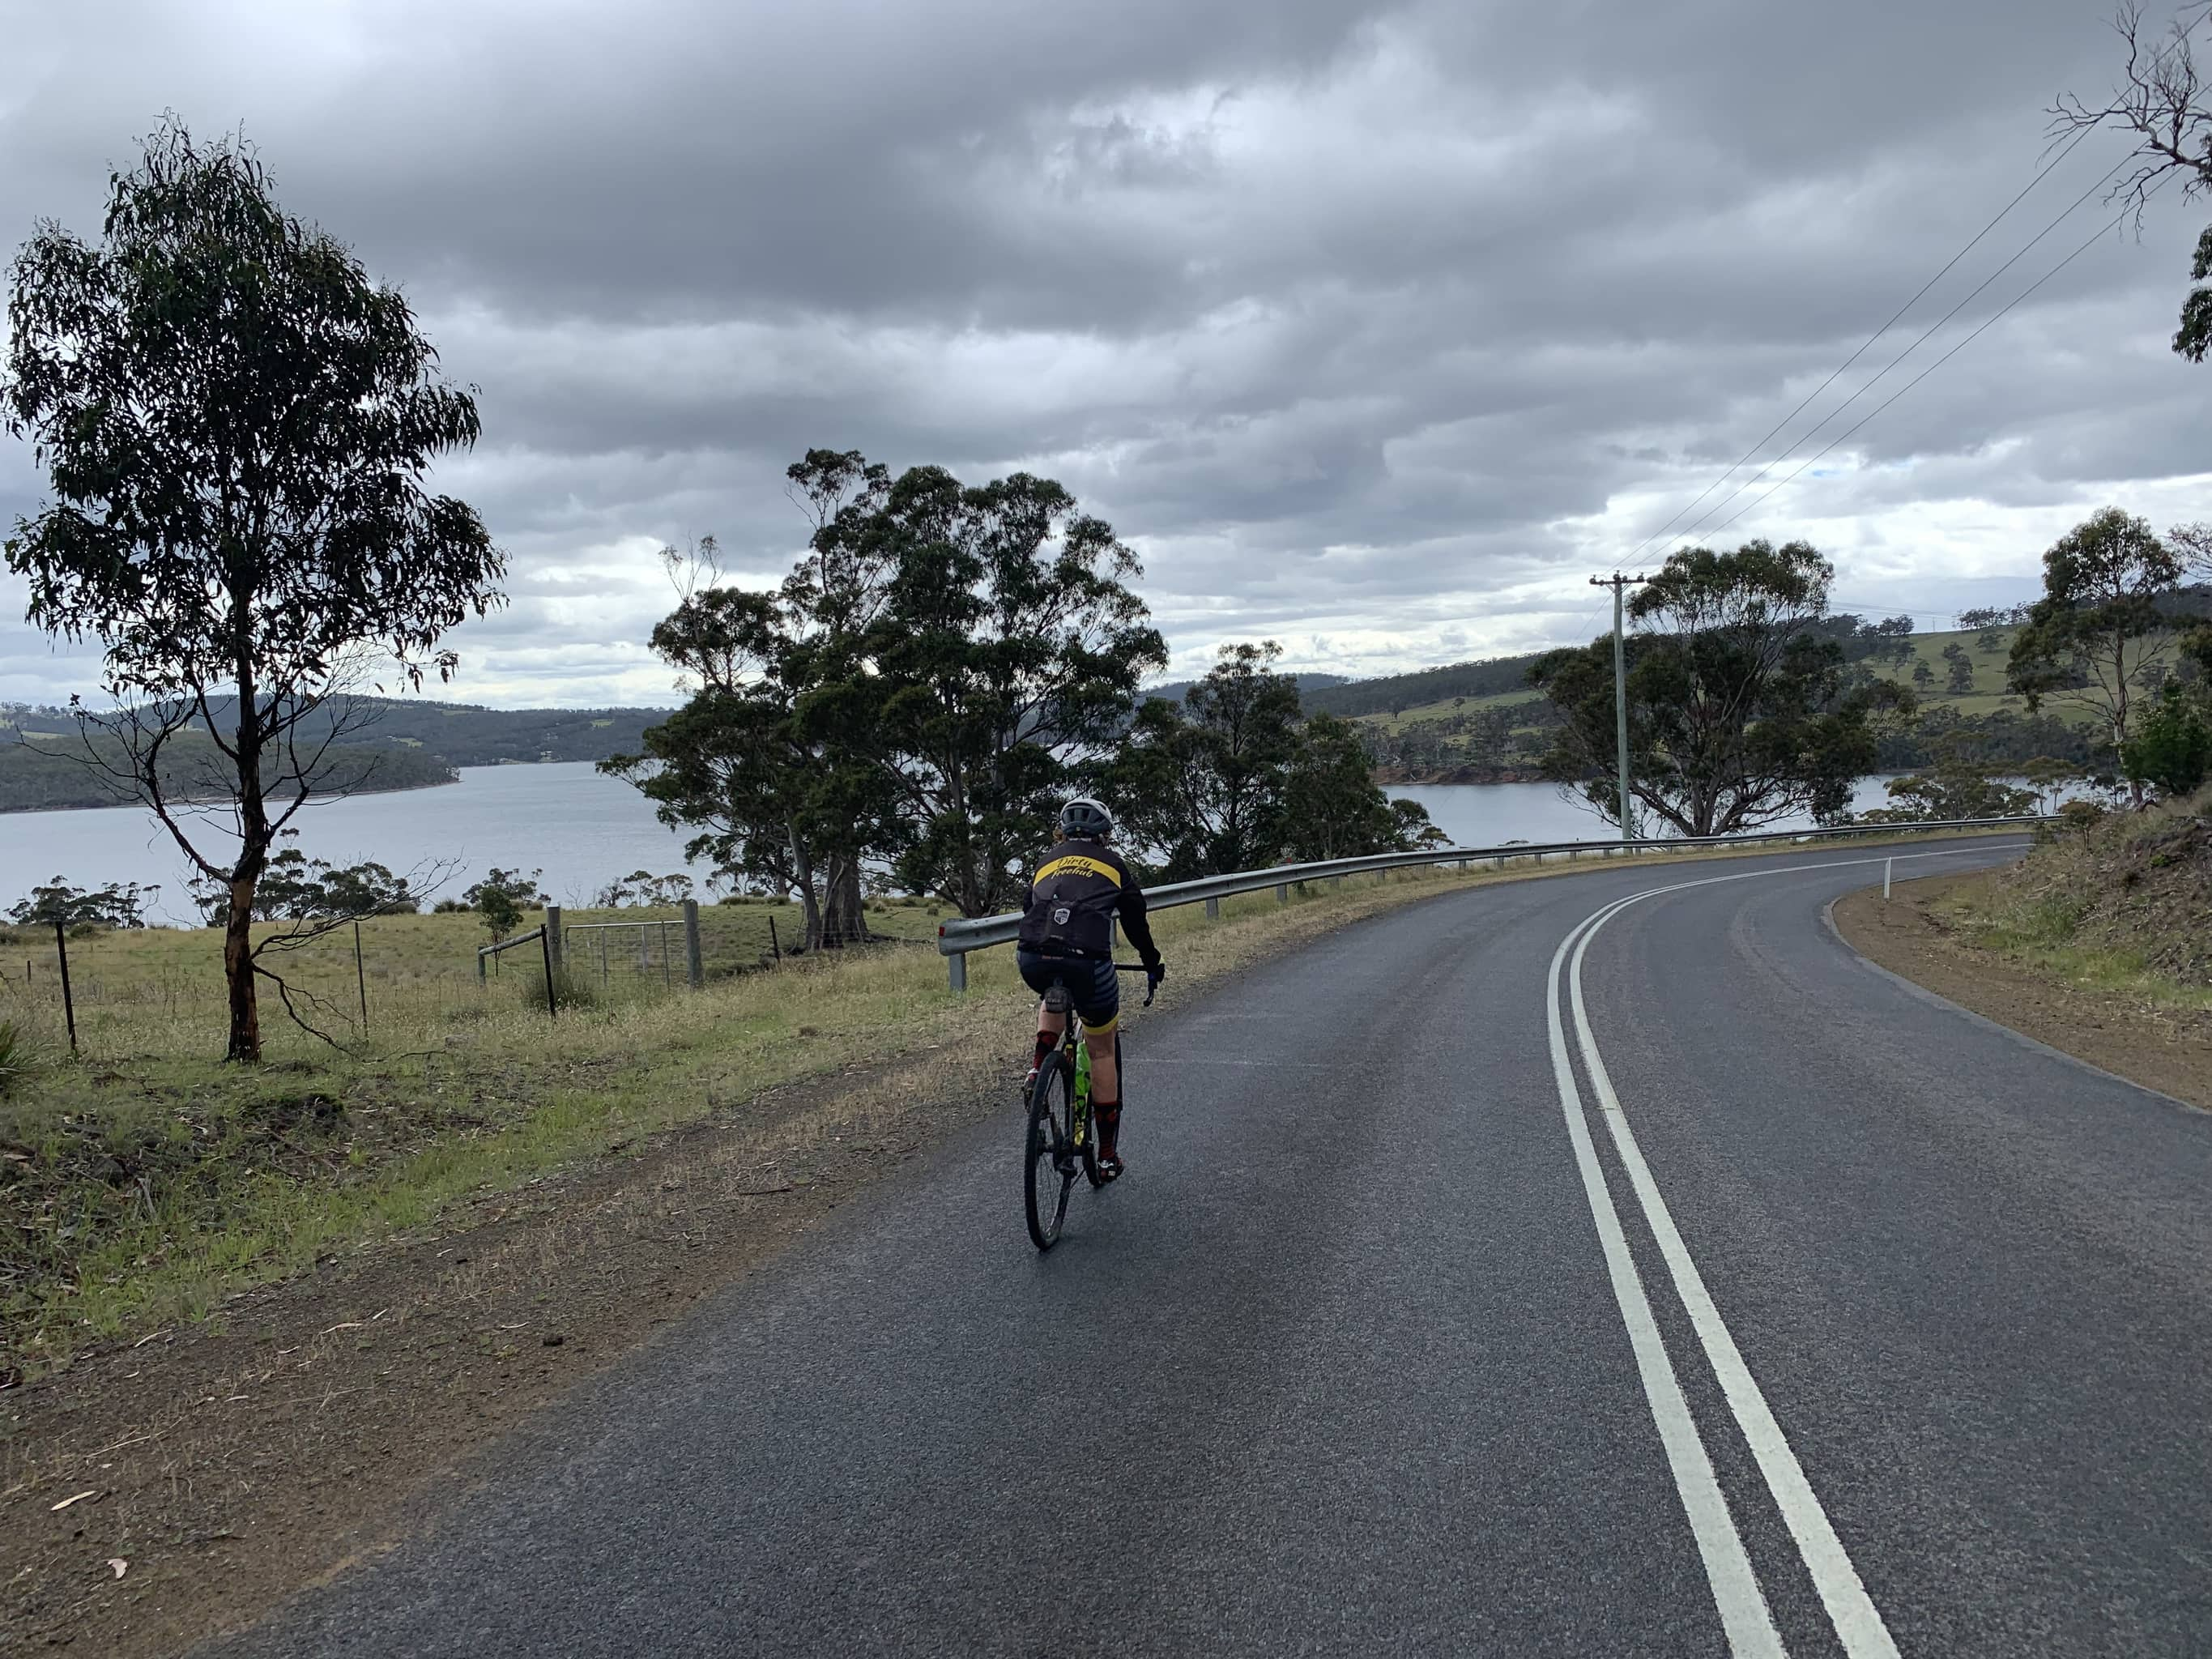 Bike rider on paved road with Barnes Bay of Bruny Island in background.